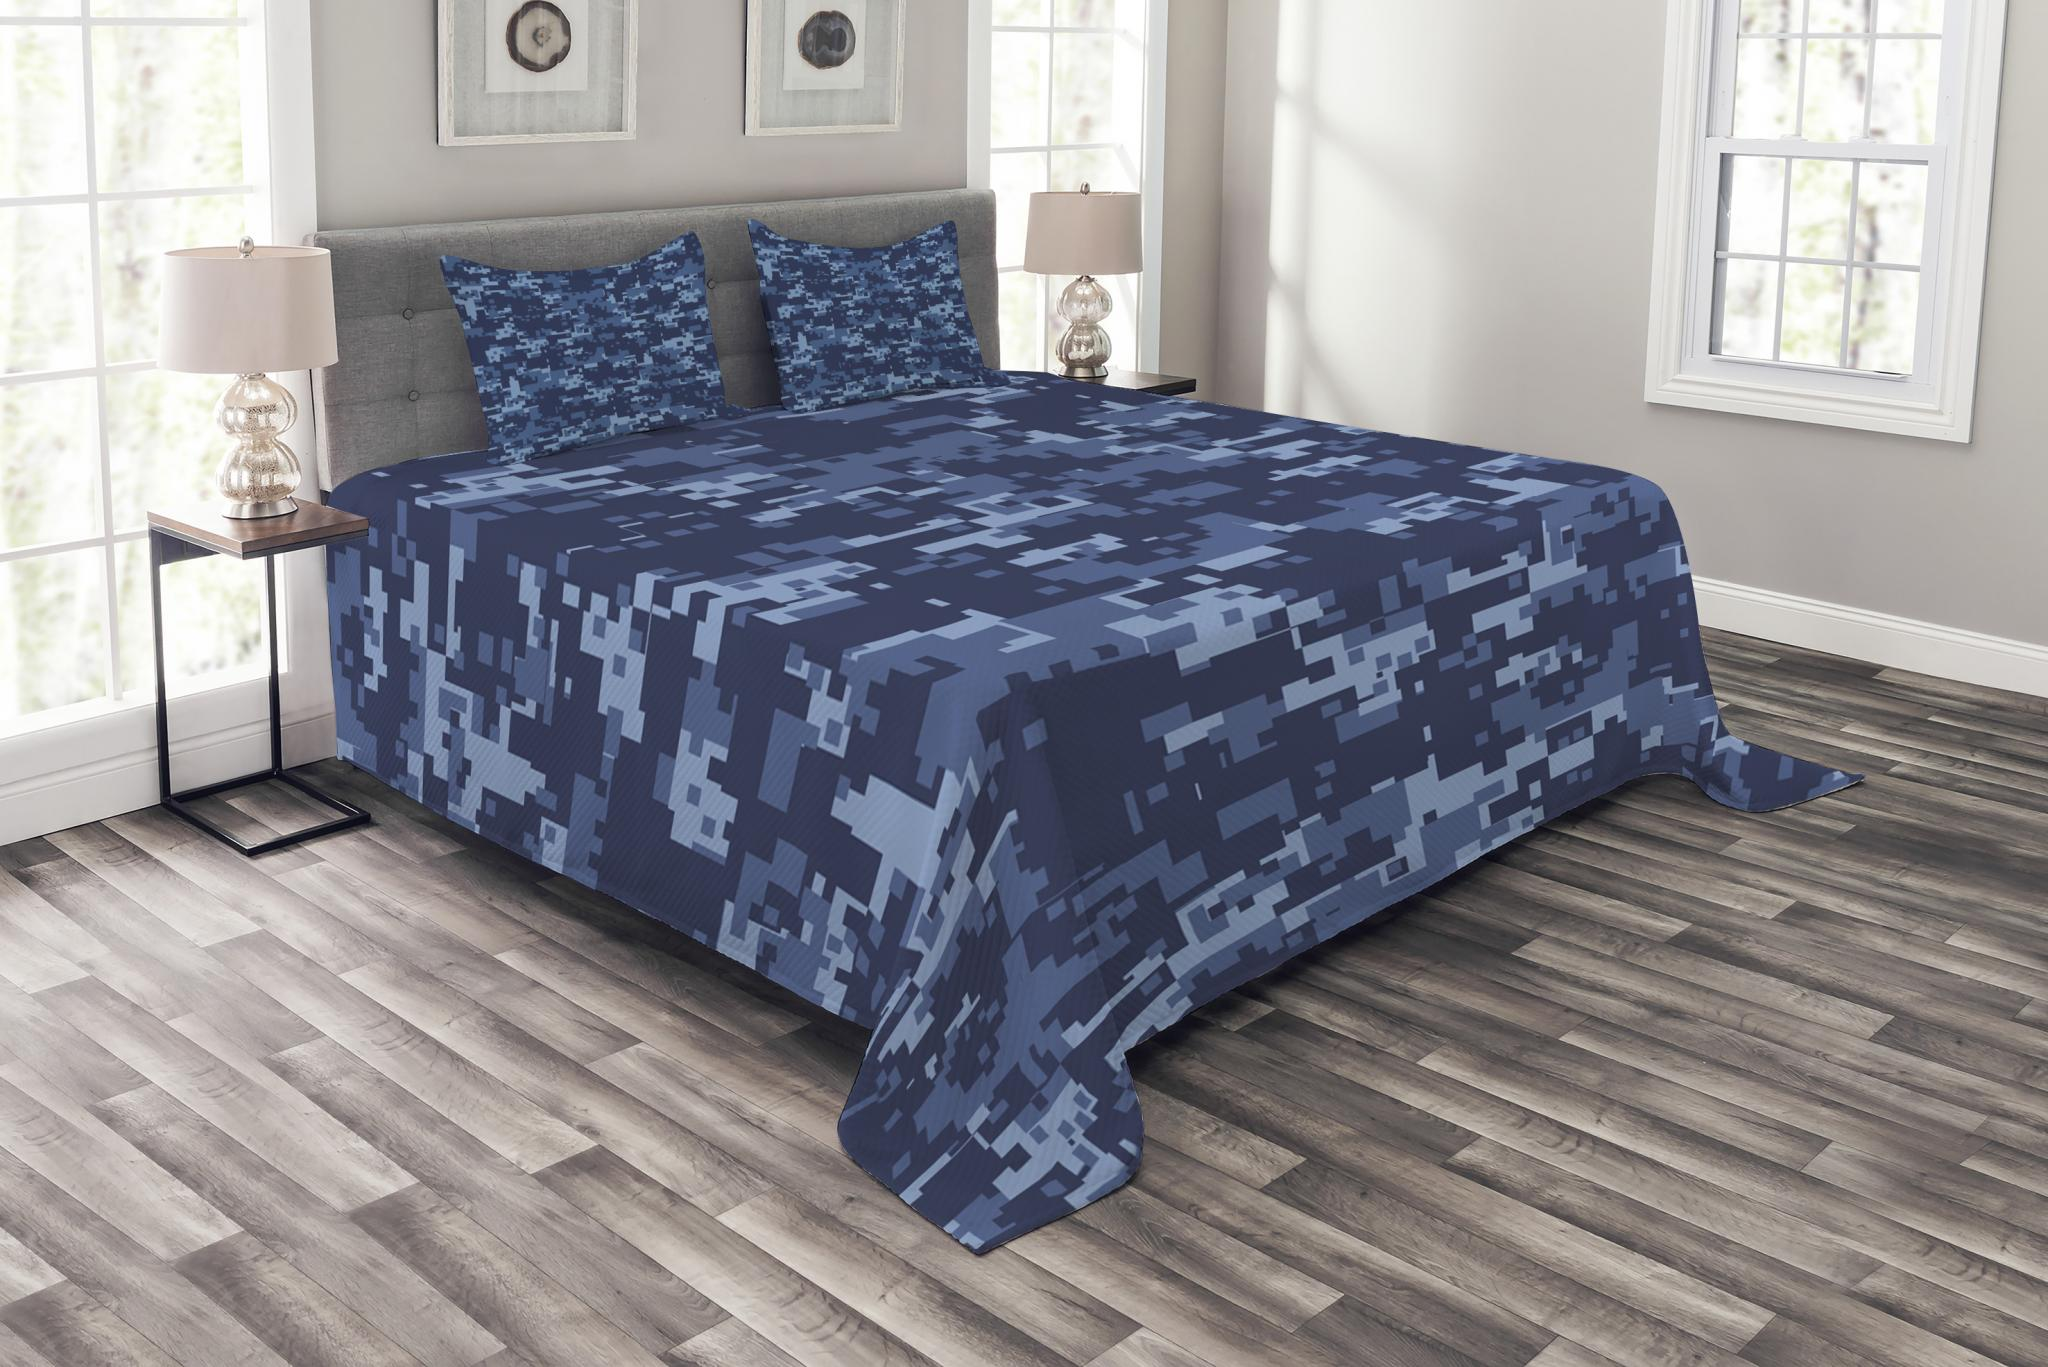 Camo Bedspread Set, Militaristic Digital Effected Armed Forces Pattern Grunge Fashion in Blue, Decorative... by Kozmos